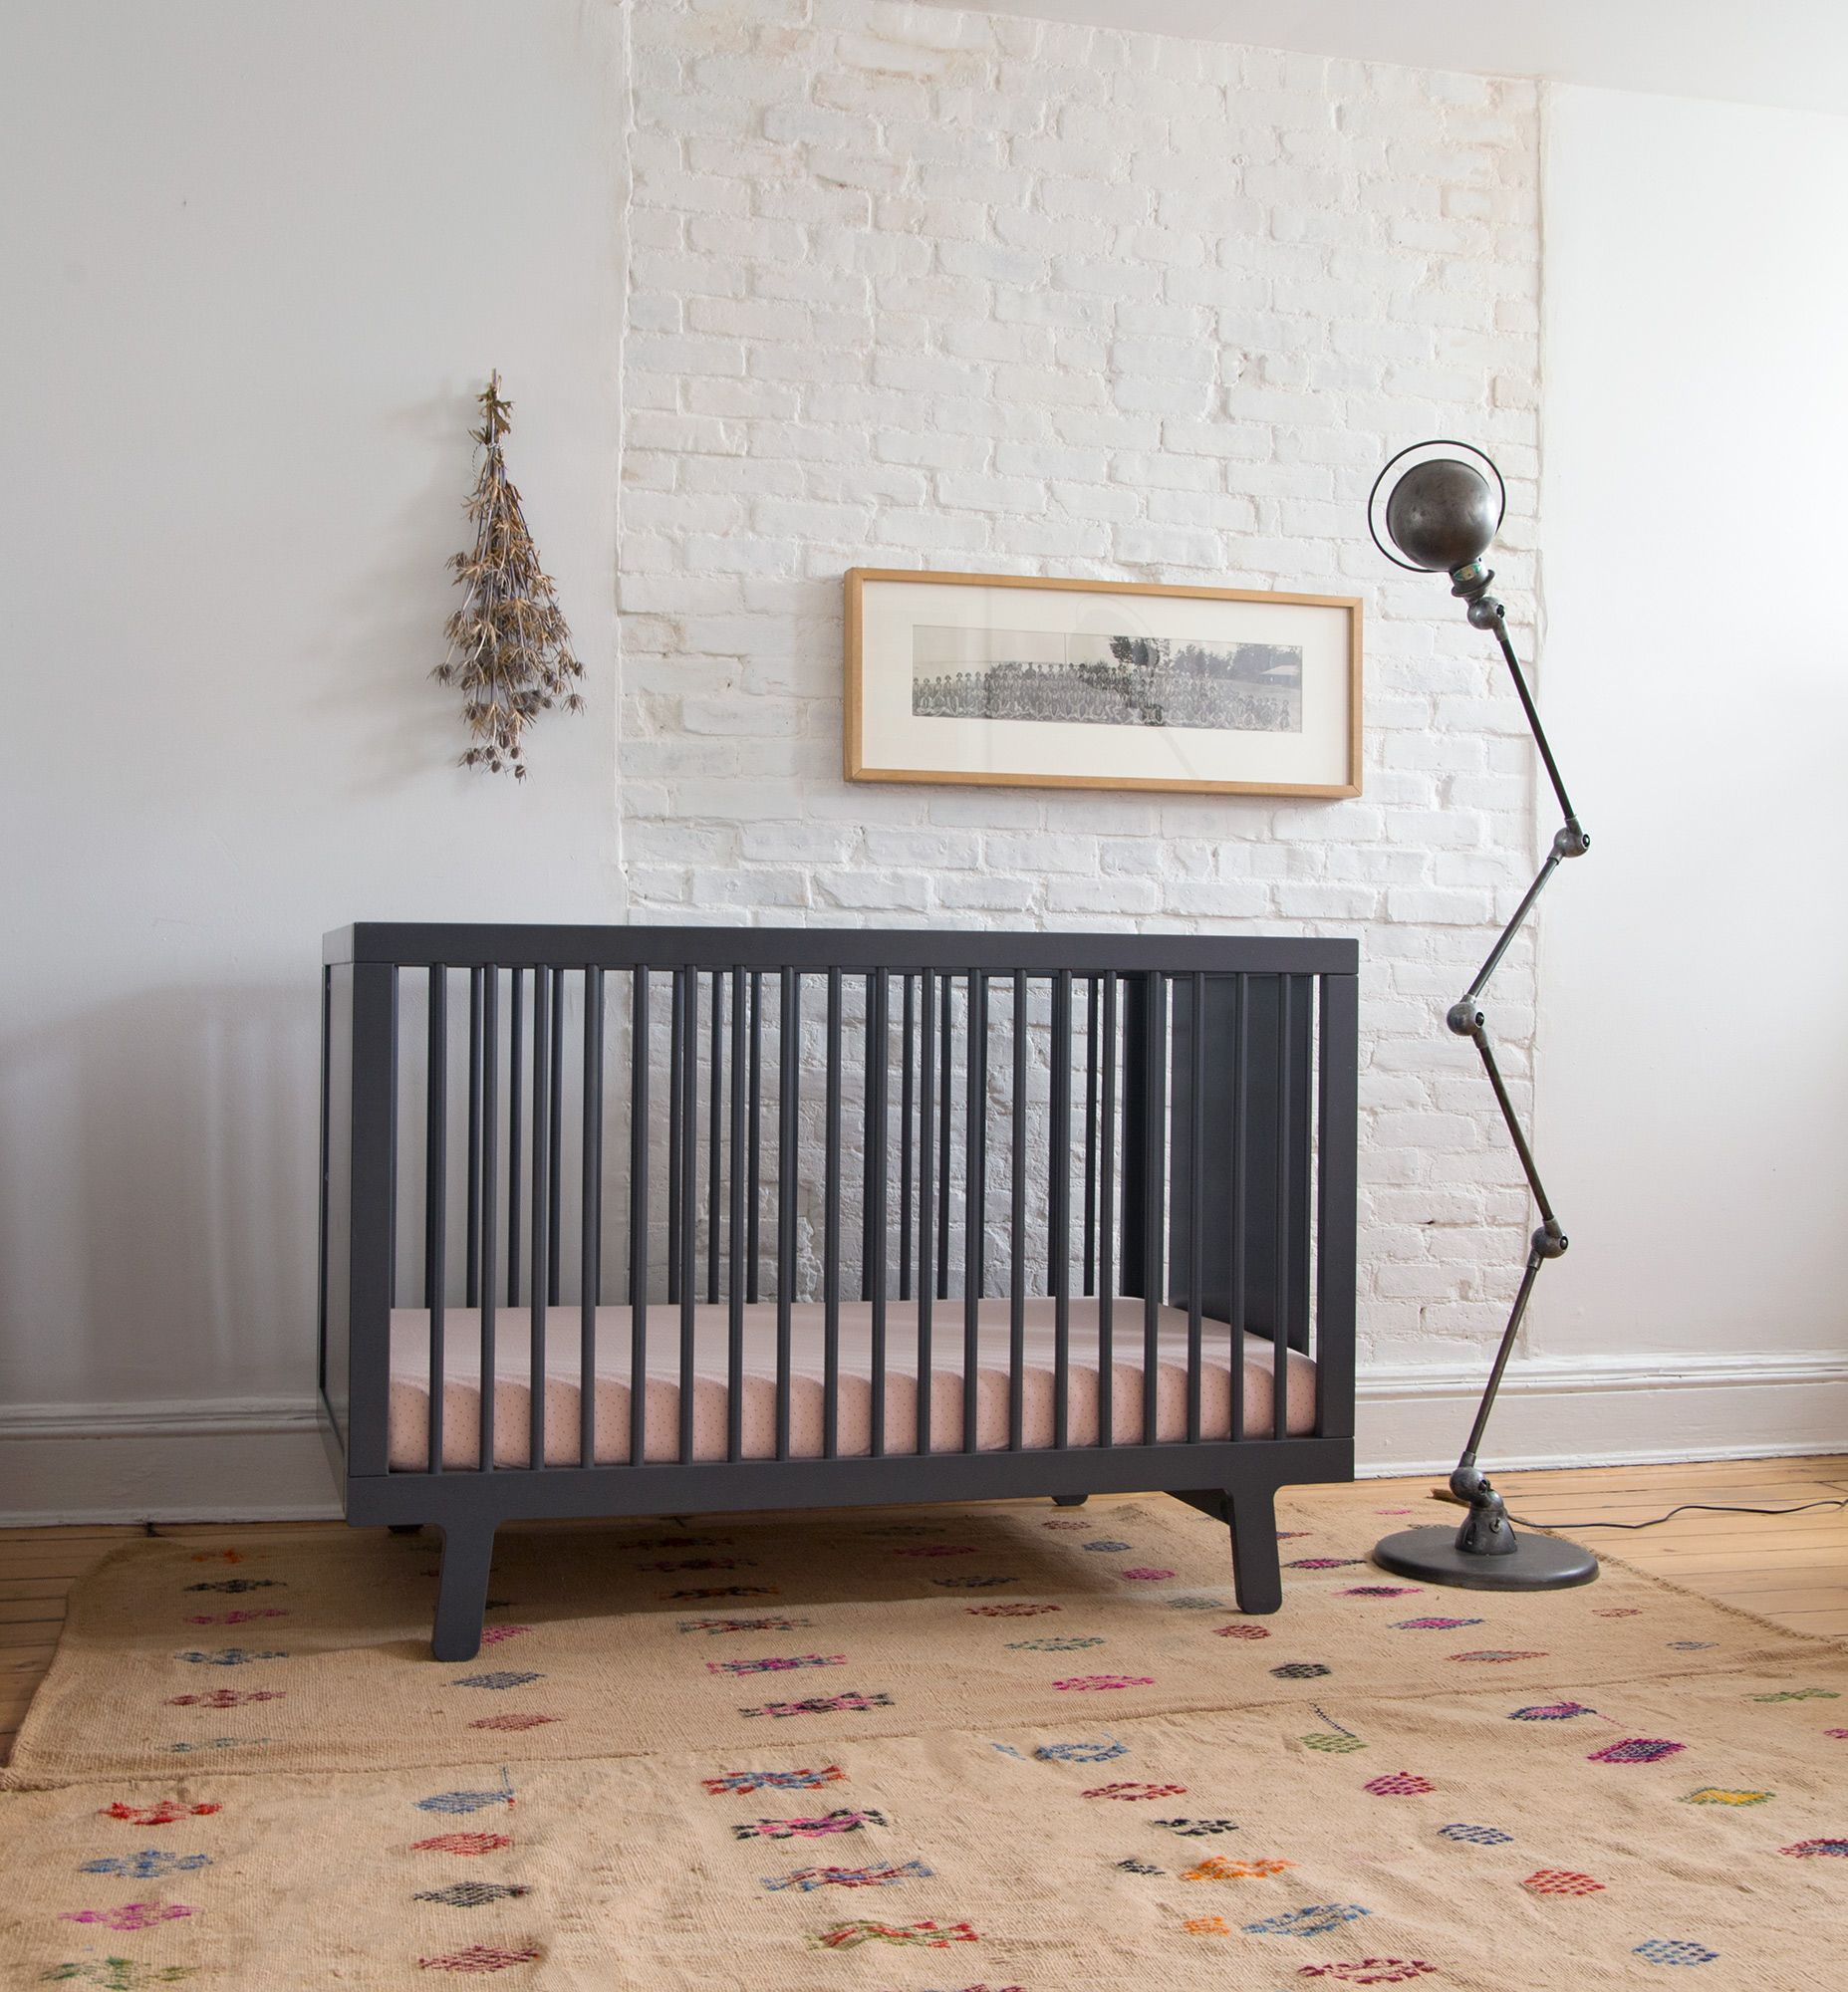 Stylish And Versatile, The Sparrow Crib From Oeuf Is The Perfect  Cornerstone For The Sparrow Nursery. This Crib Features Slim Side